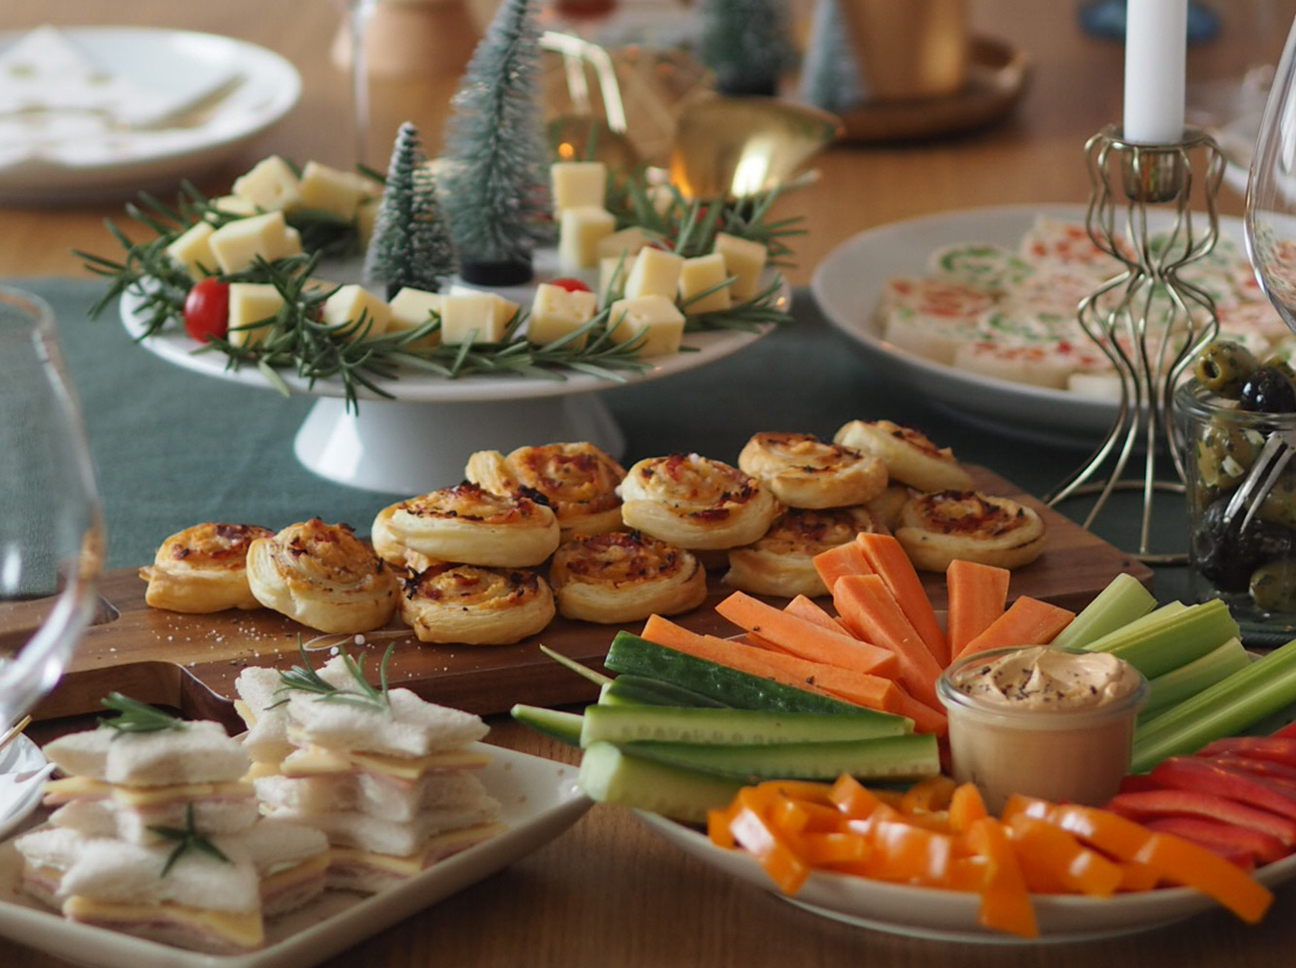 Party Essen Ideen Last-minute-fingerfood-ideen Für Ihre Christmas-party | Freundin.de